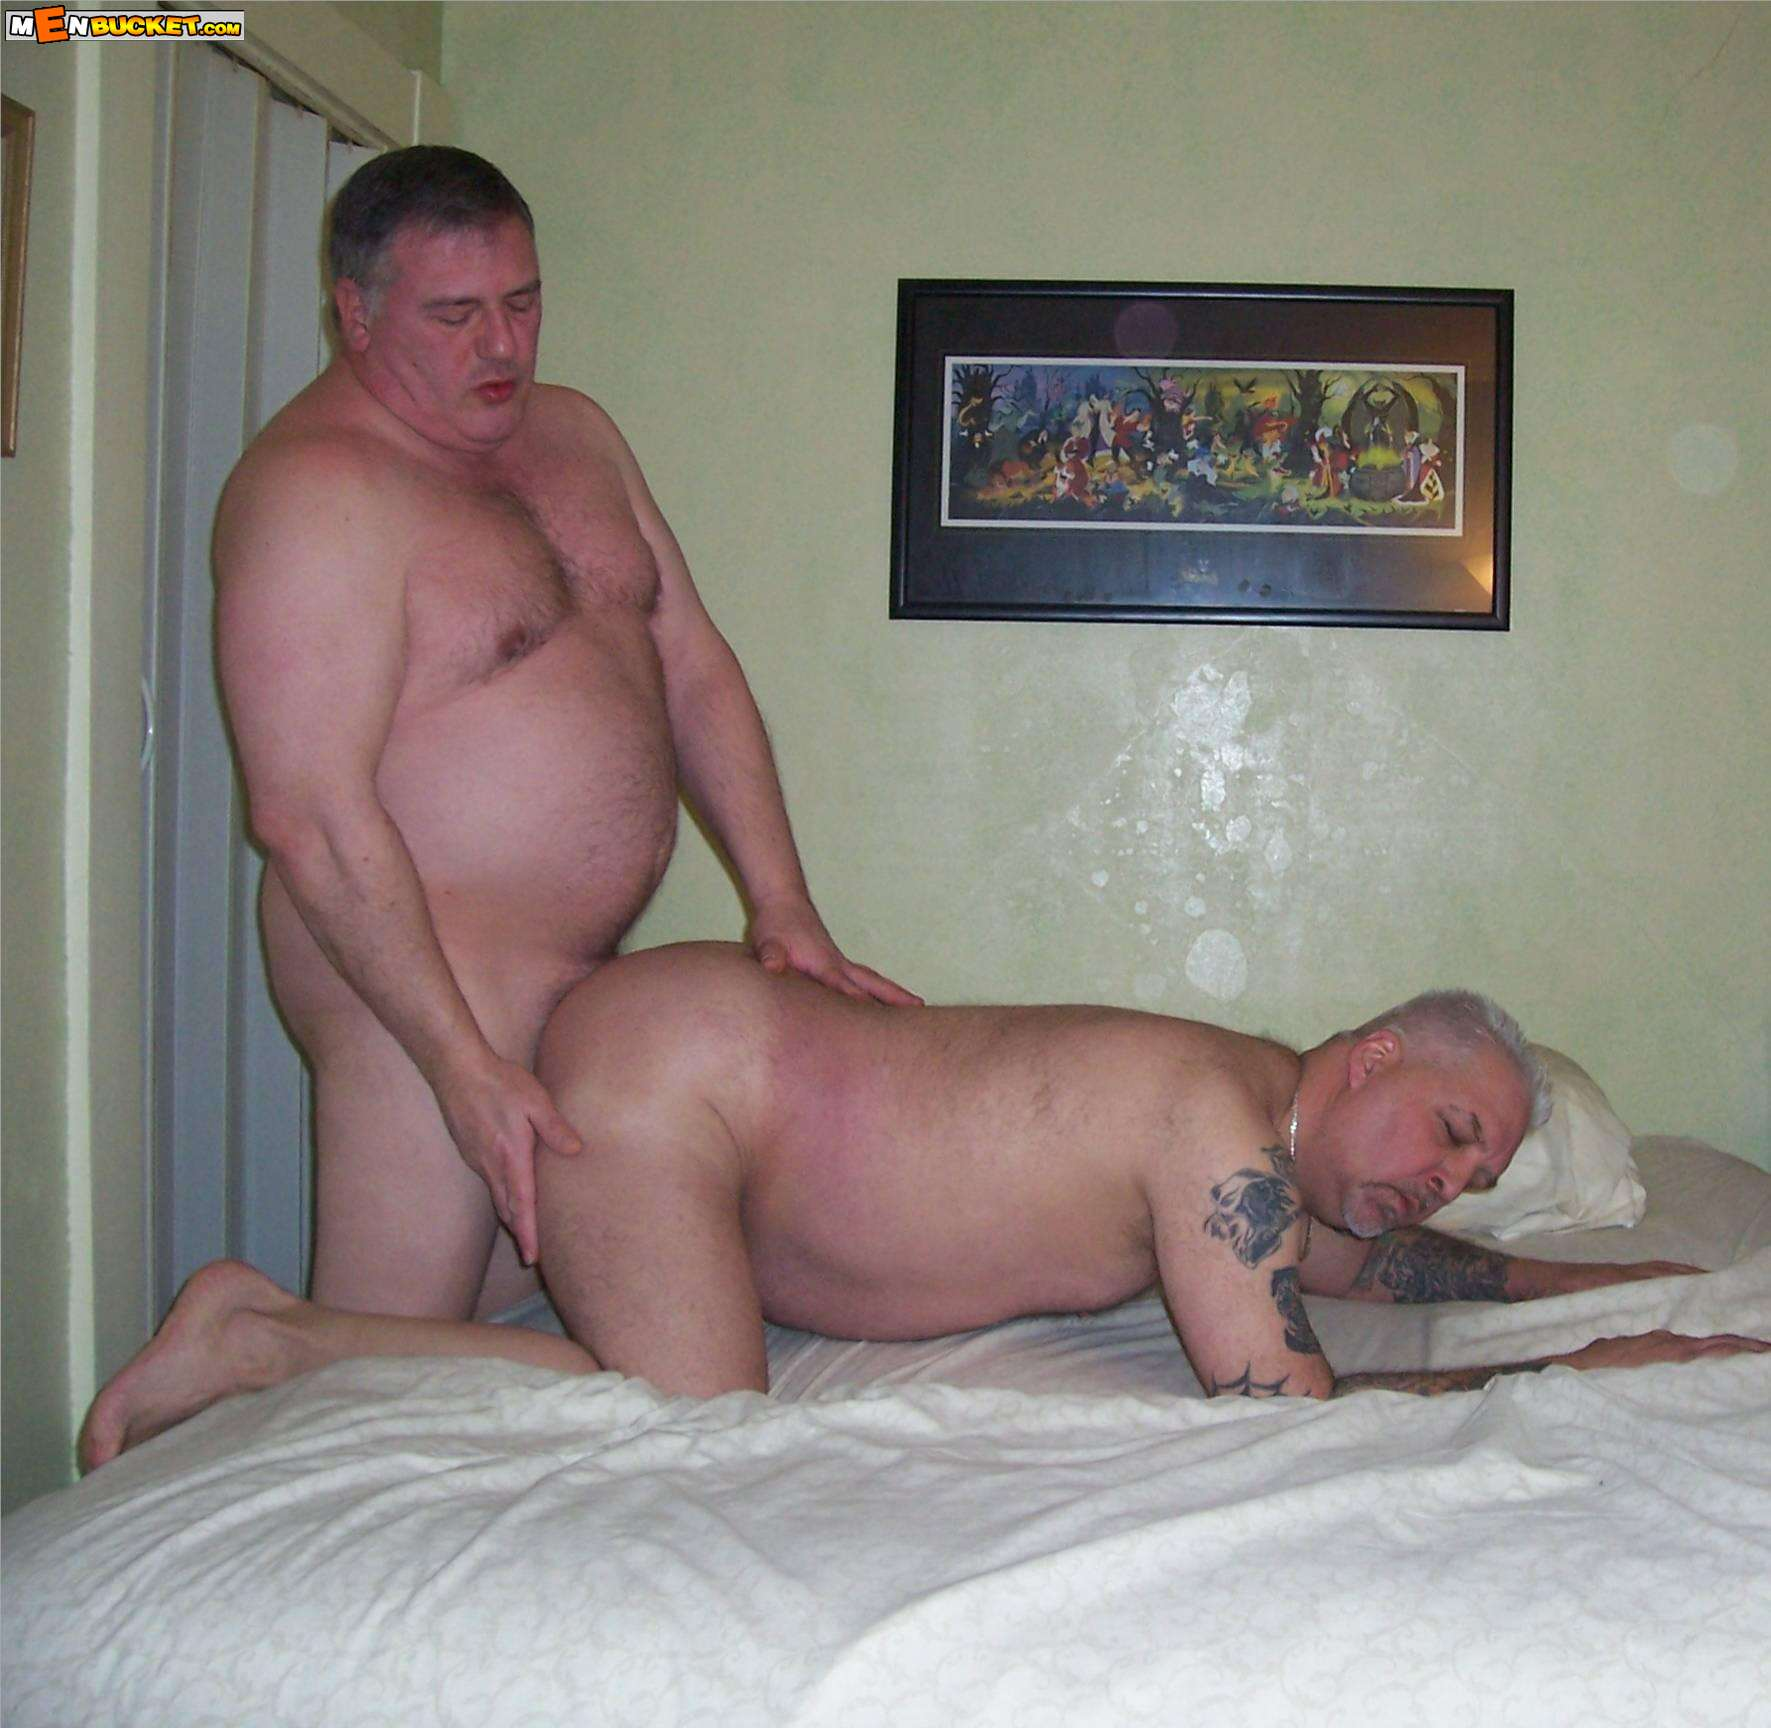 image Mature men having gay sex with younger men